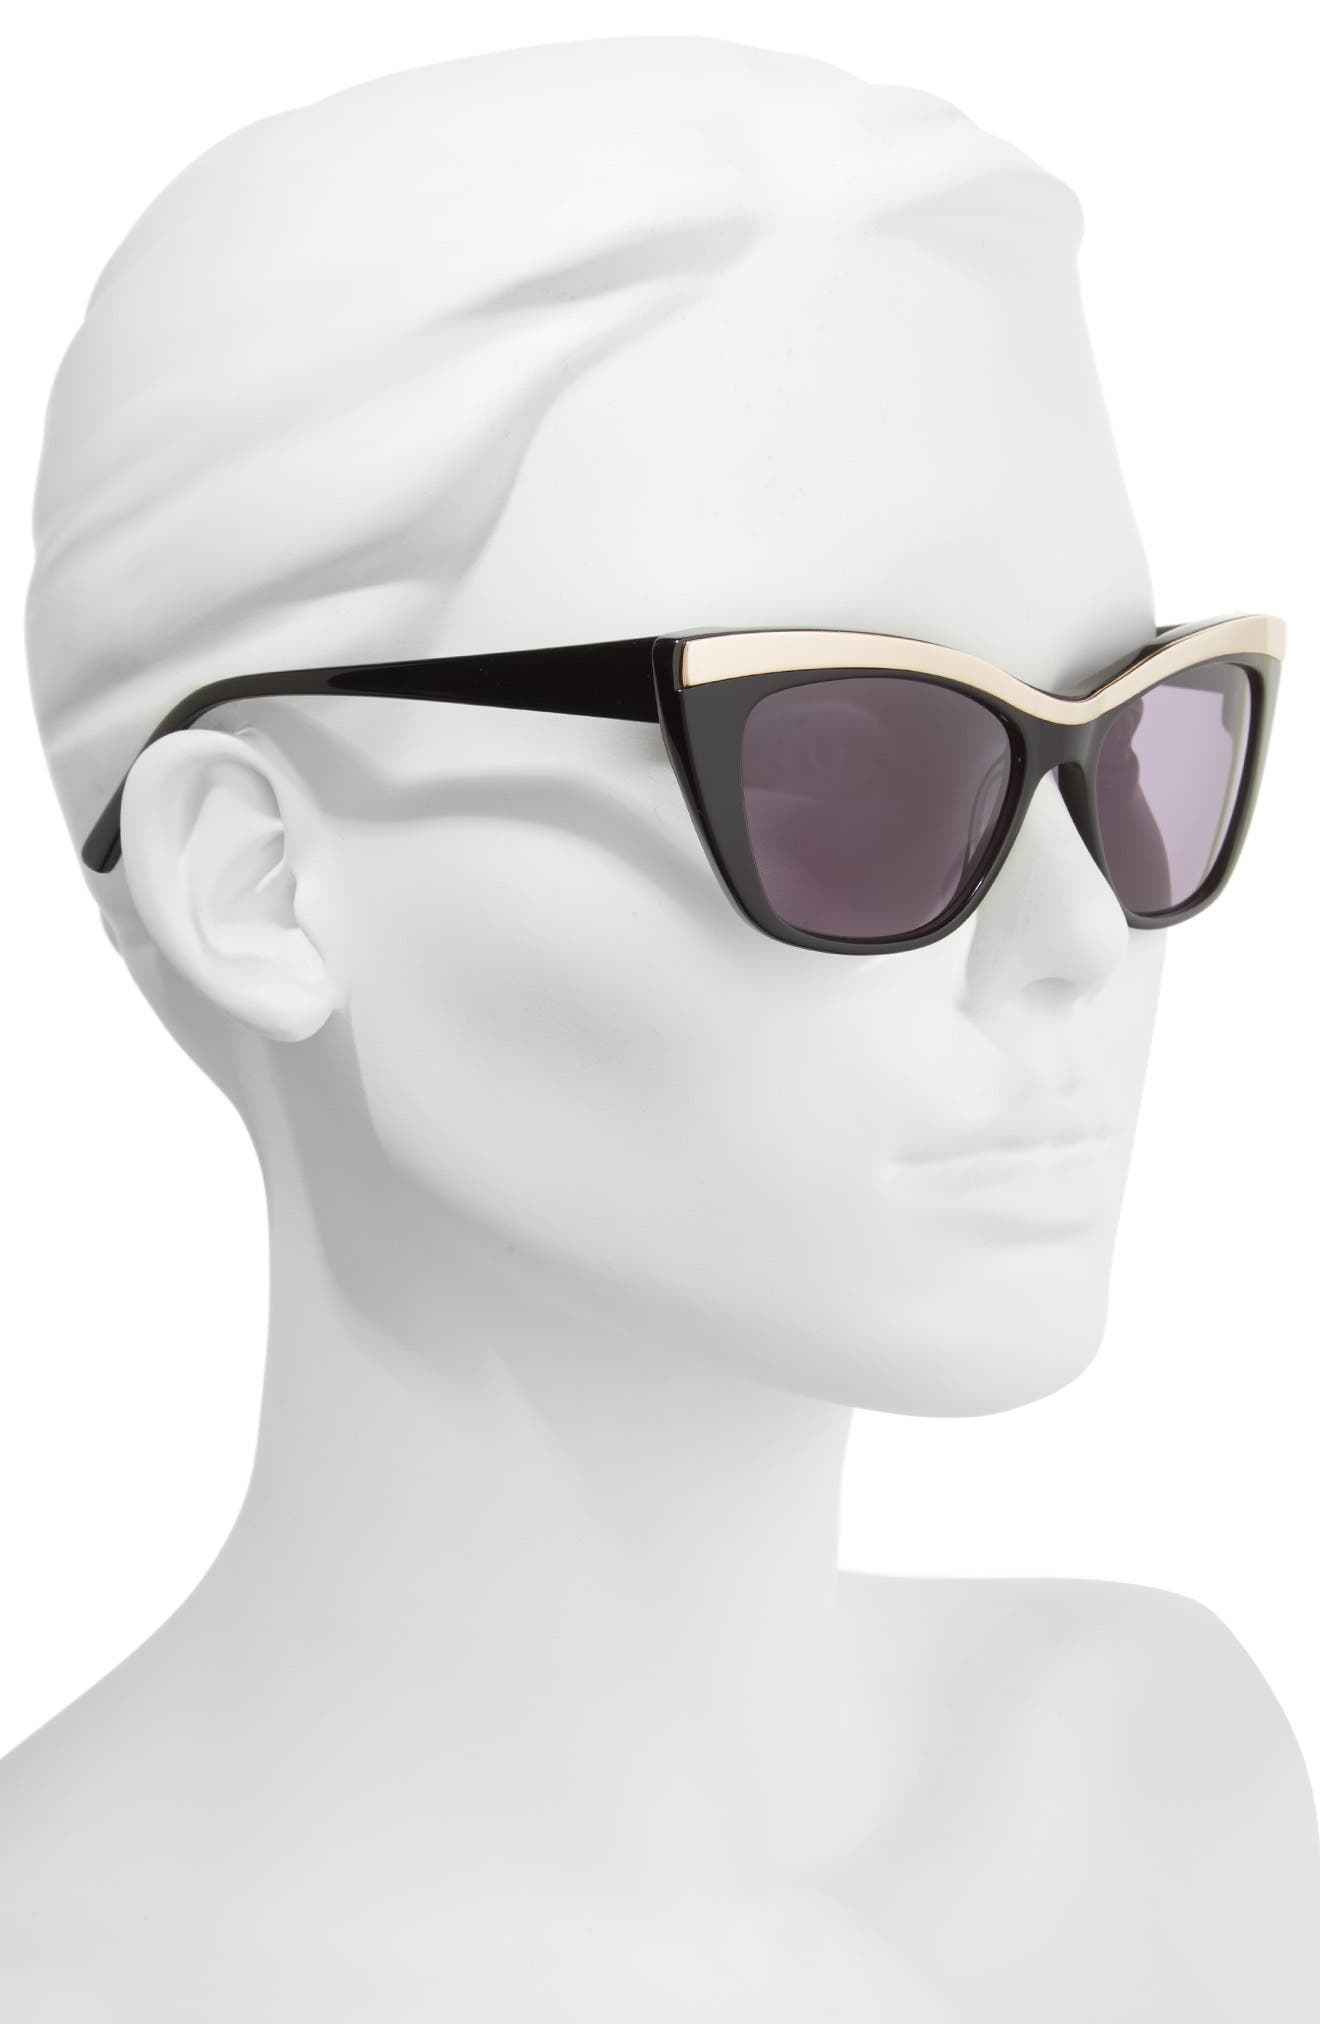 54mm Rectangle Cat Eye Sunglasses,                             Alternate thumbnail 2, color,                             001